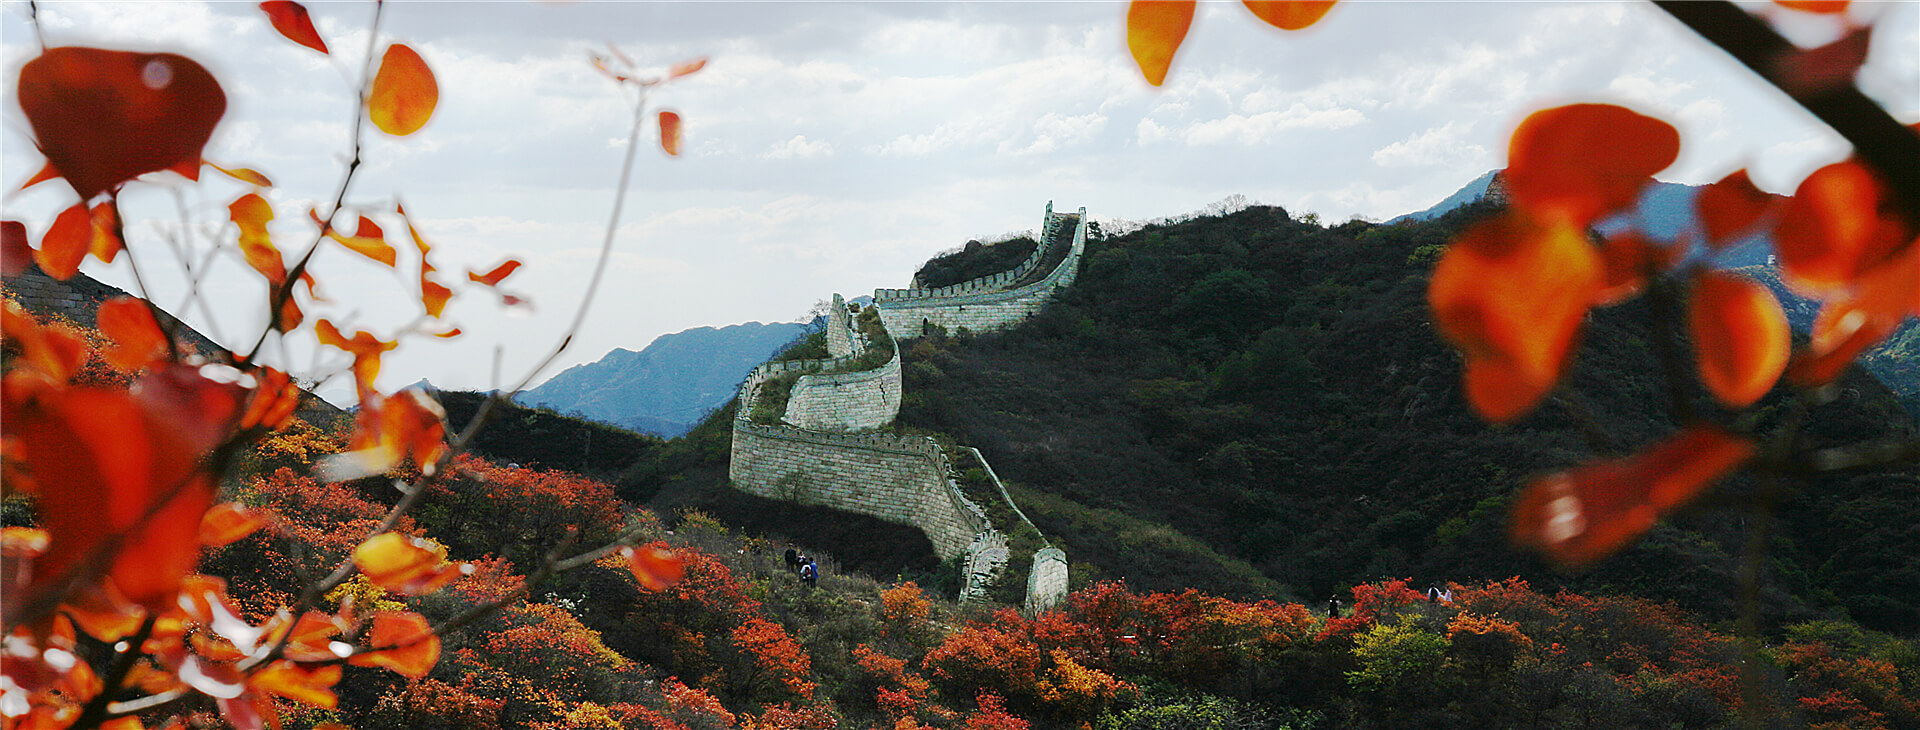 The Great Wall and red leaves_fororder_長城紅葉郭東亮 _副本